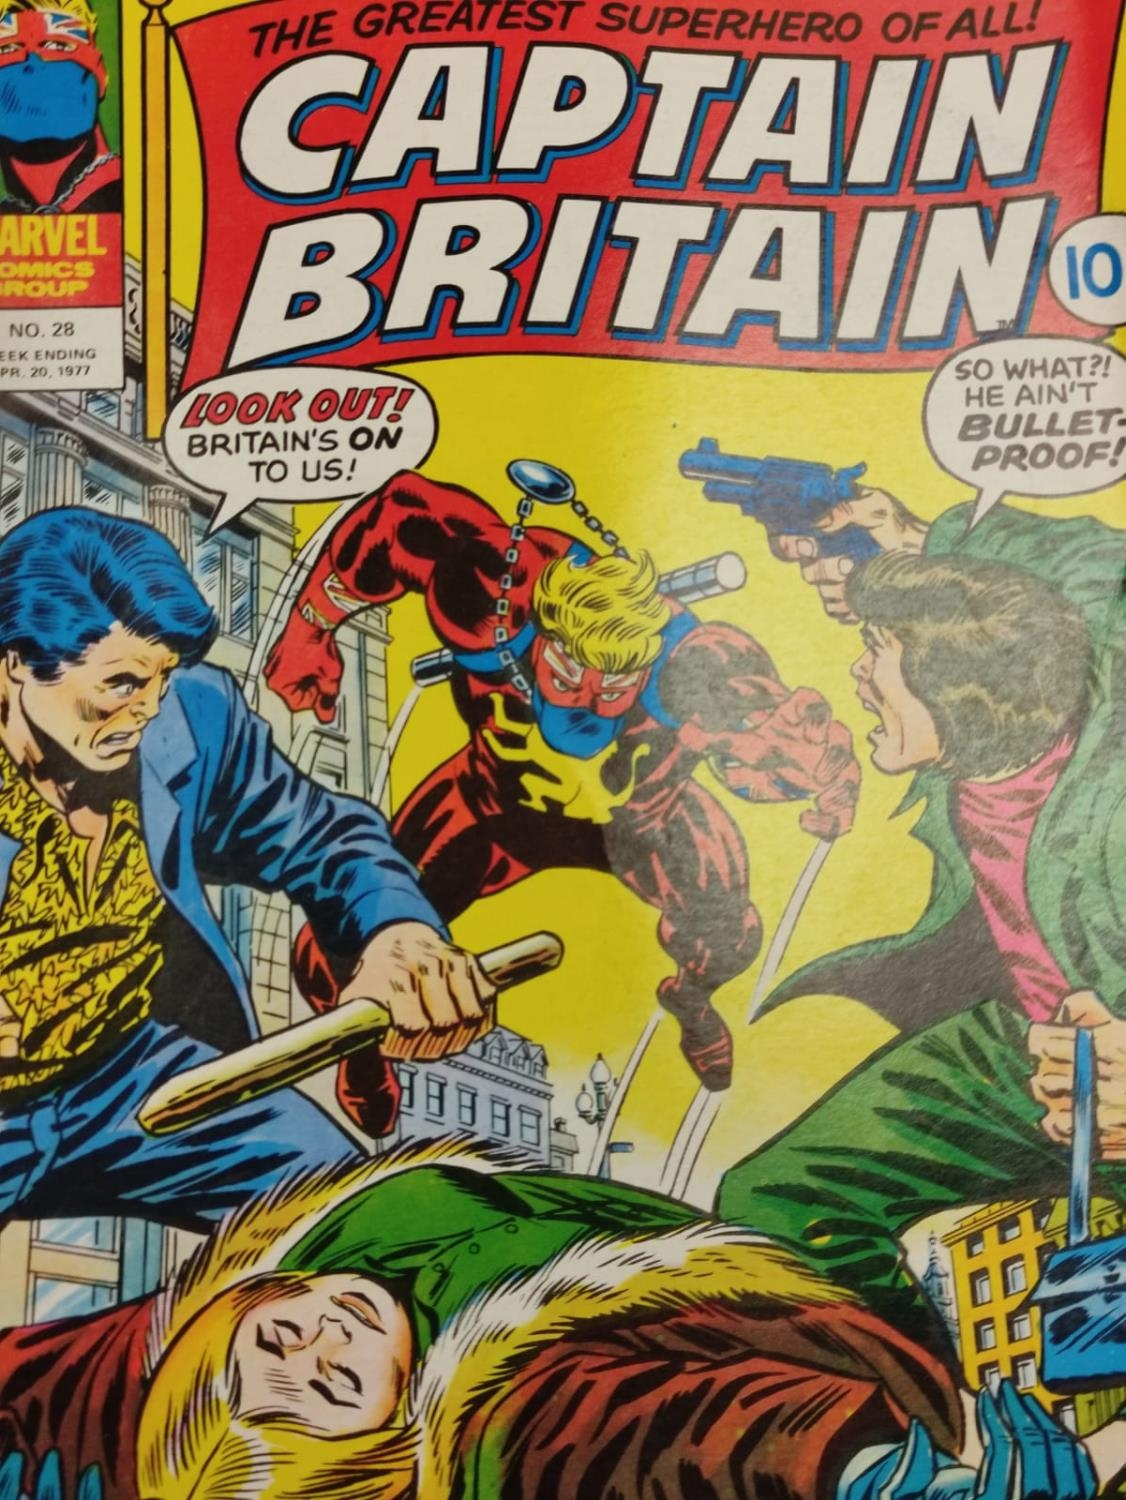 20 editions of mixed Vintage Marvel Comics. - Image 12 of 56